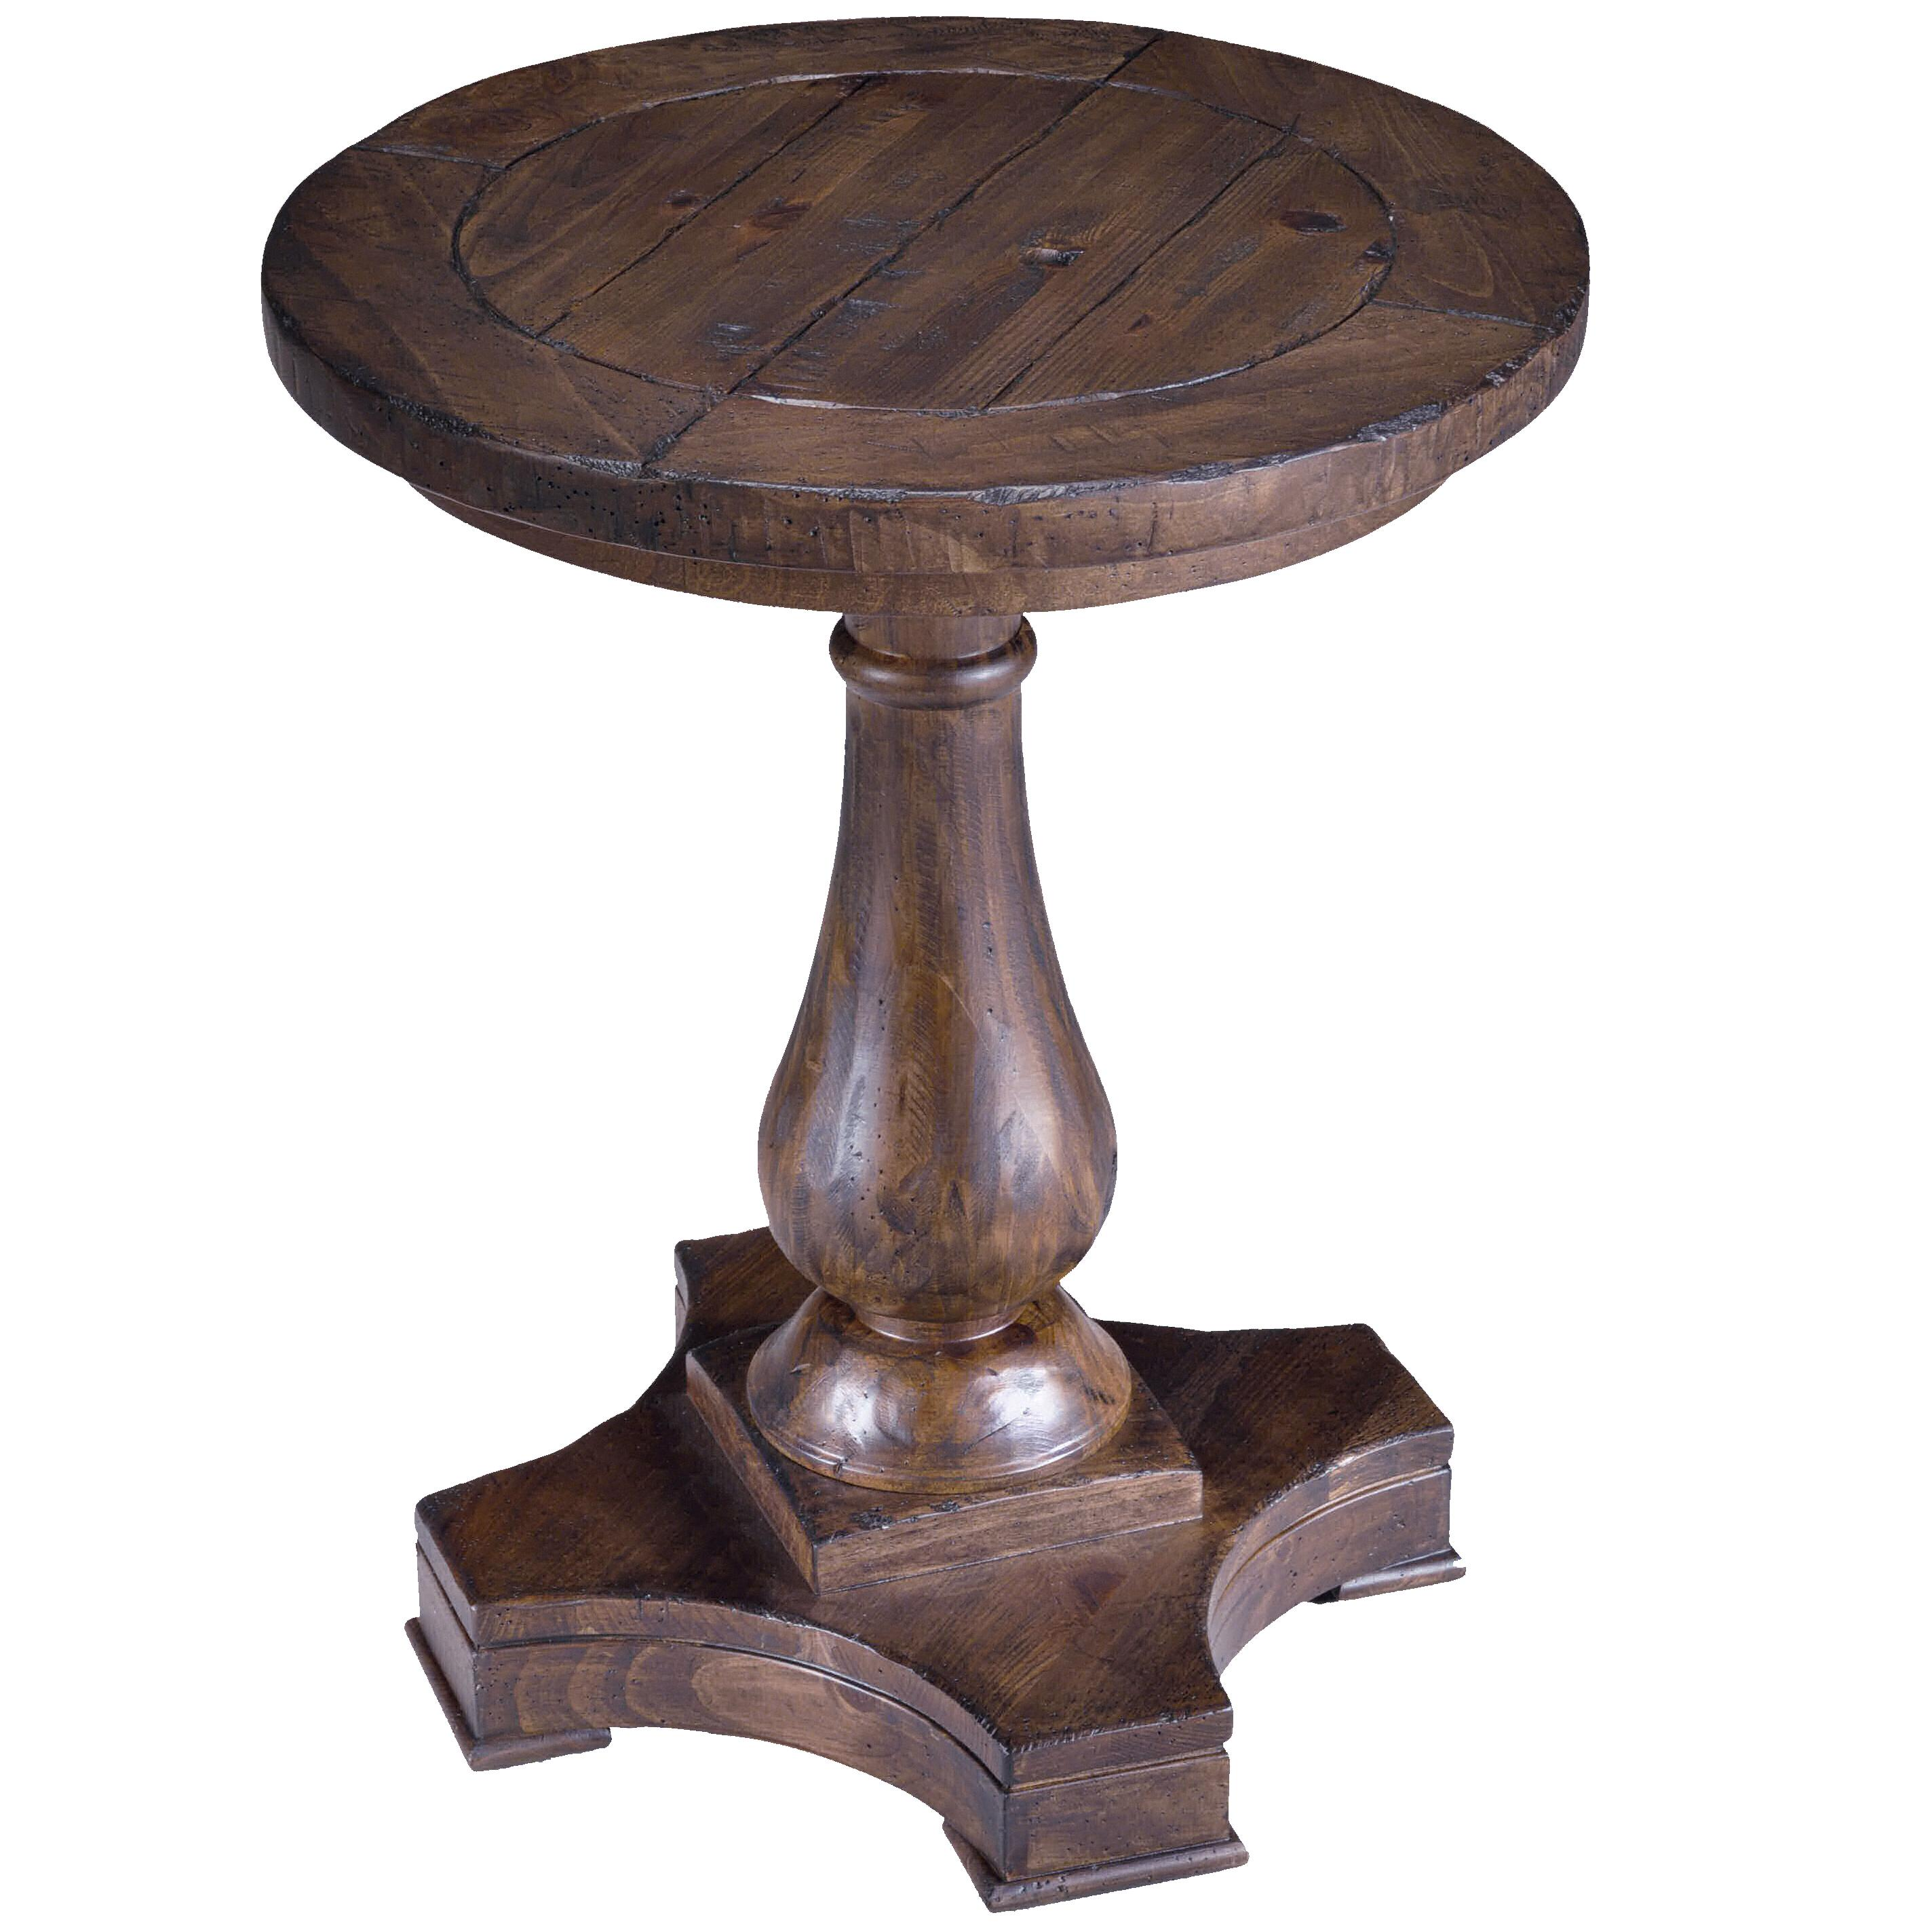 densbury round column pedestal accent end table by